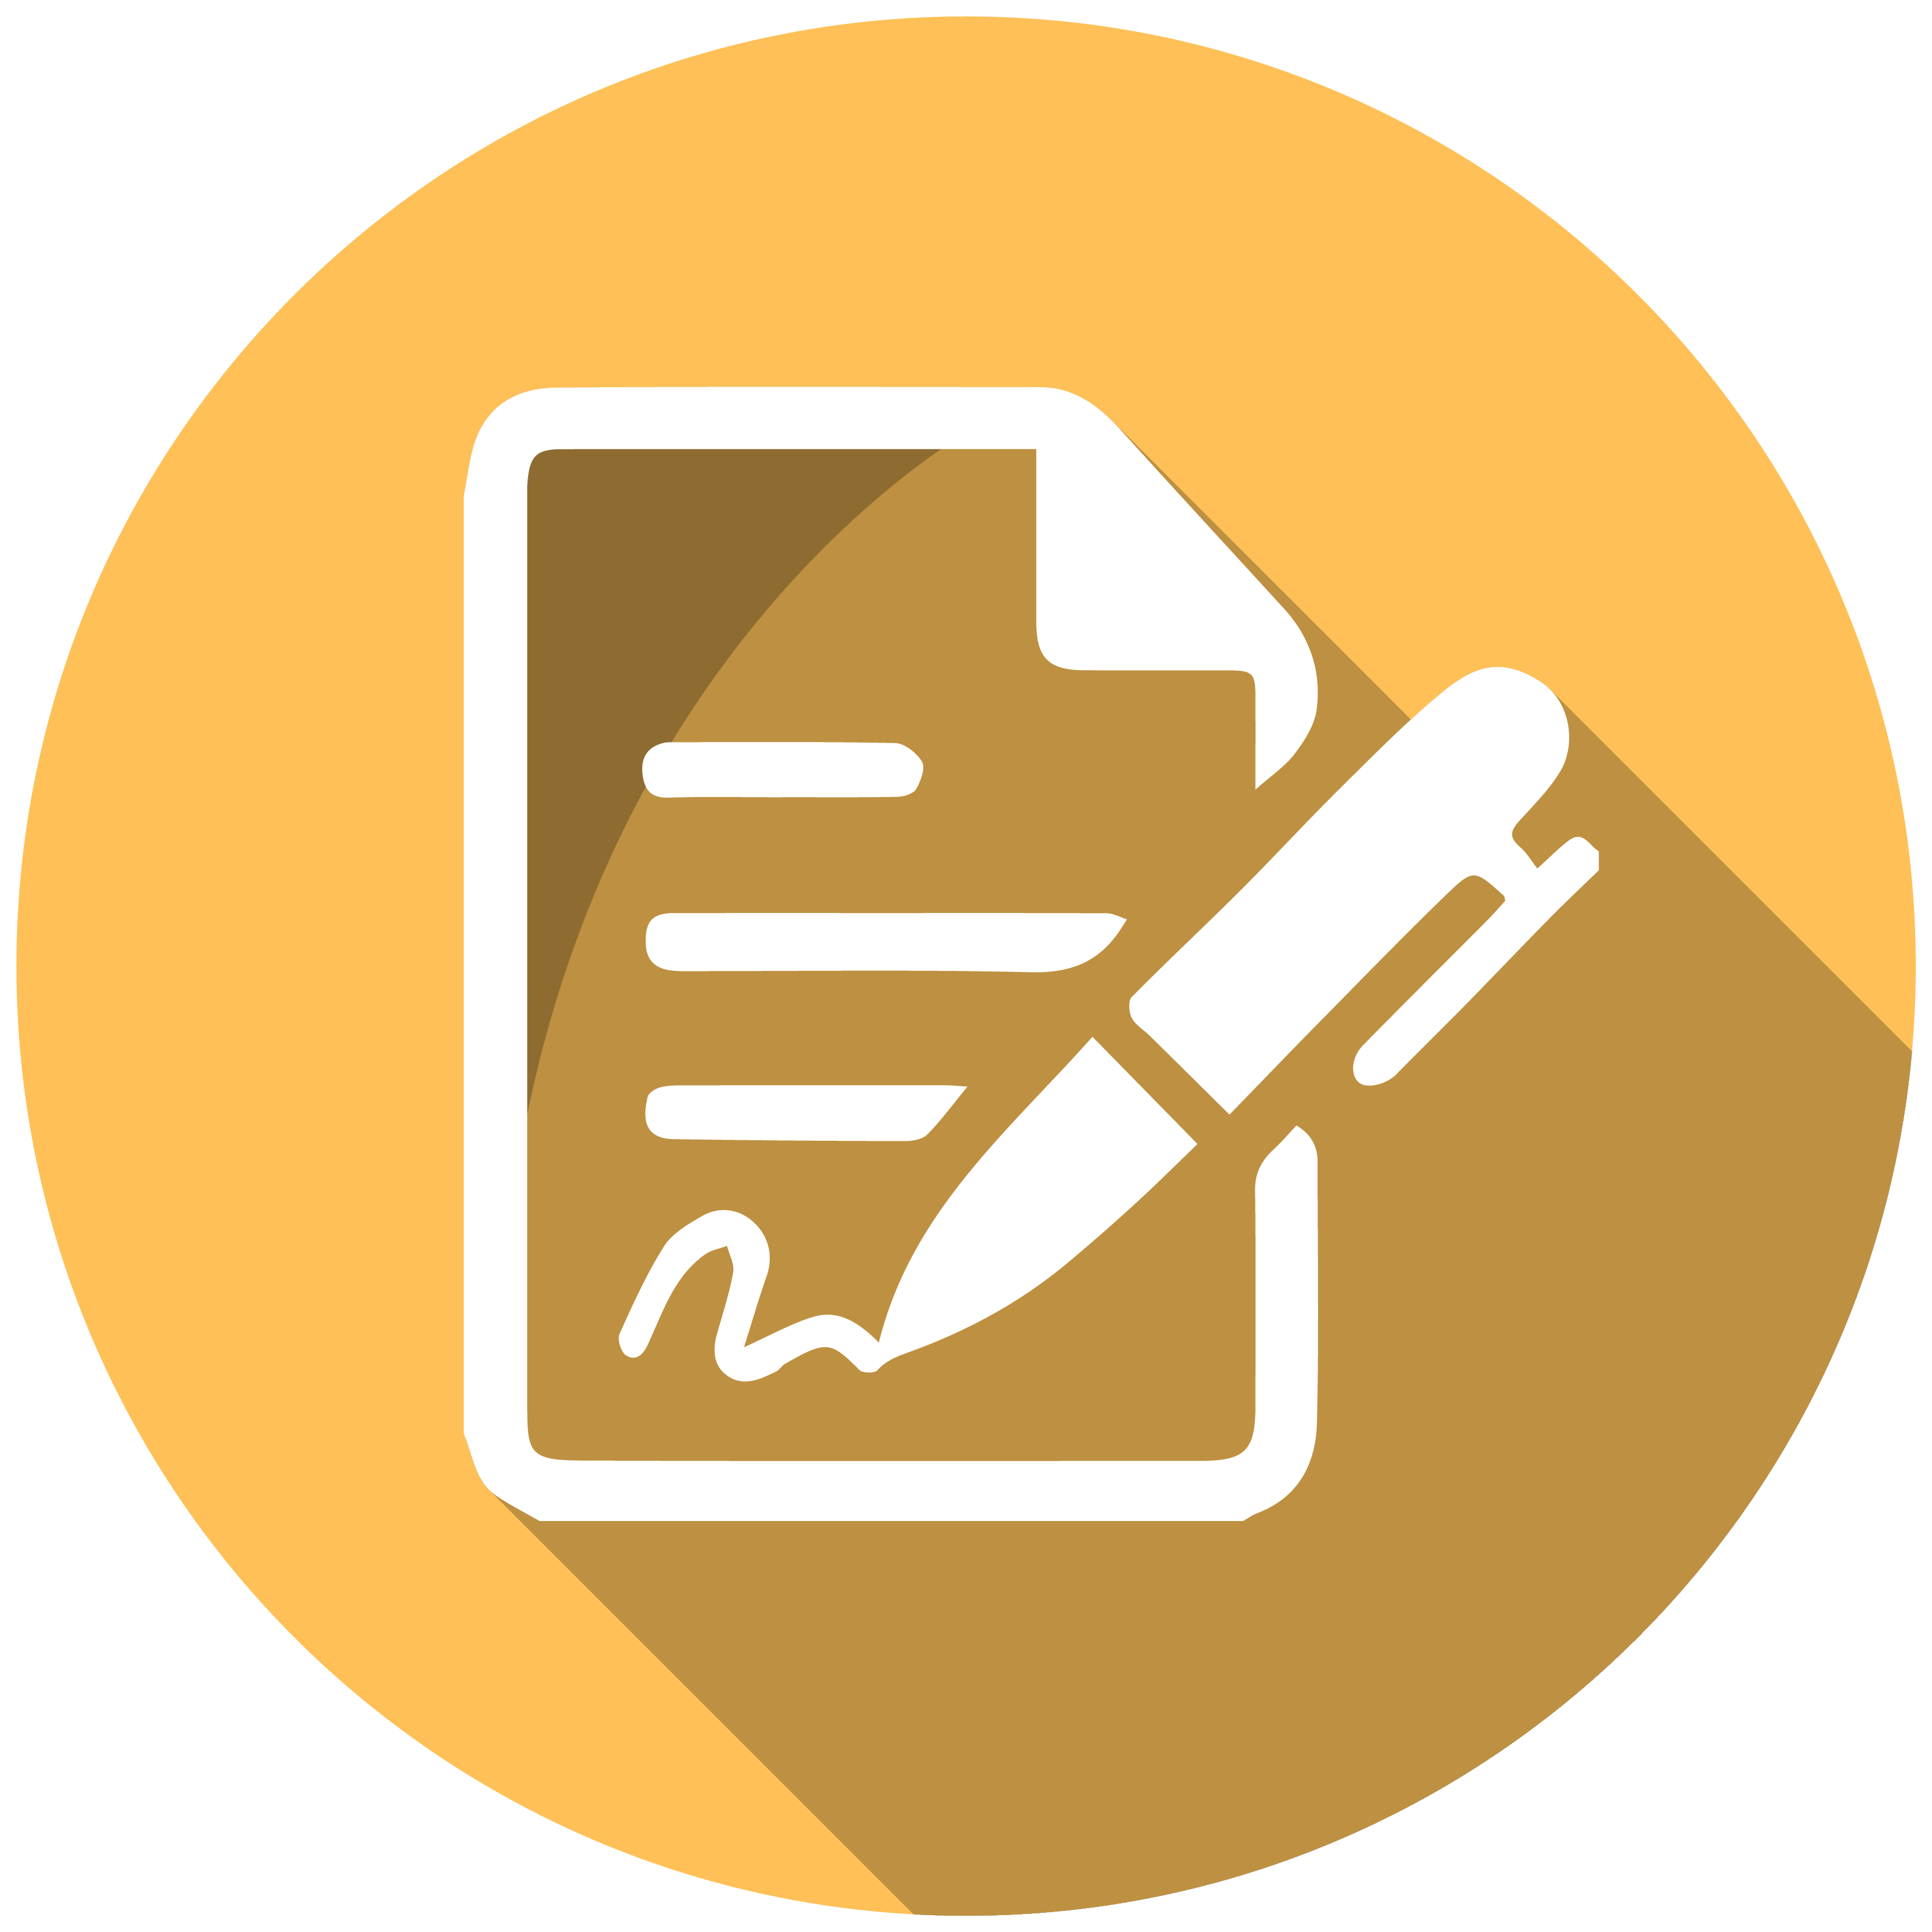 Paper icon png. Contract housing and residential